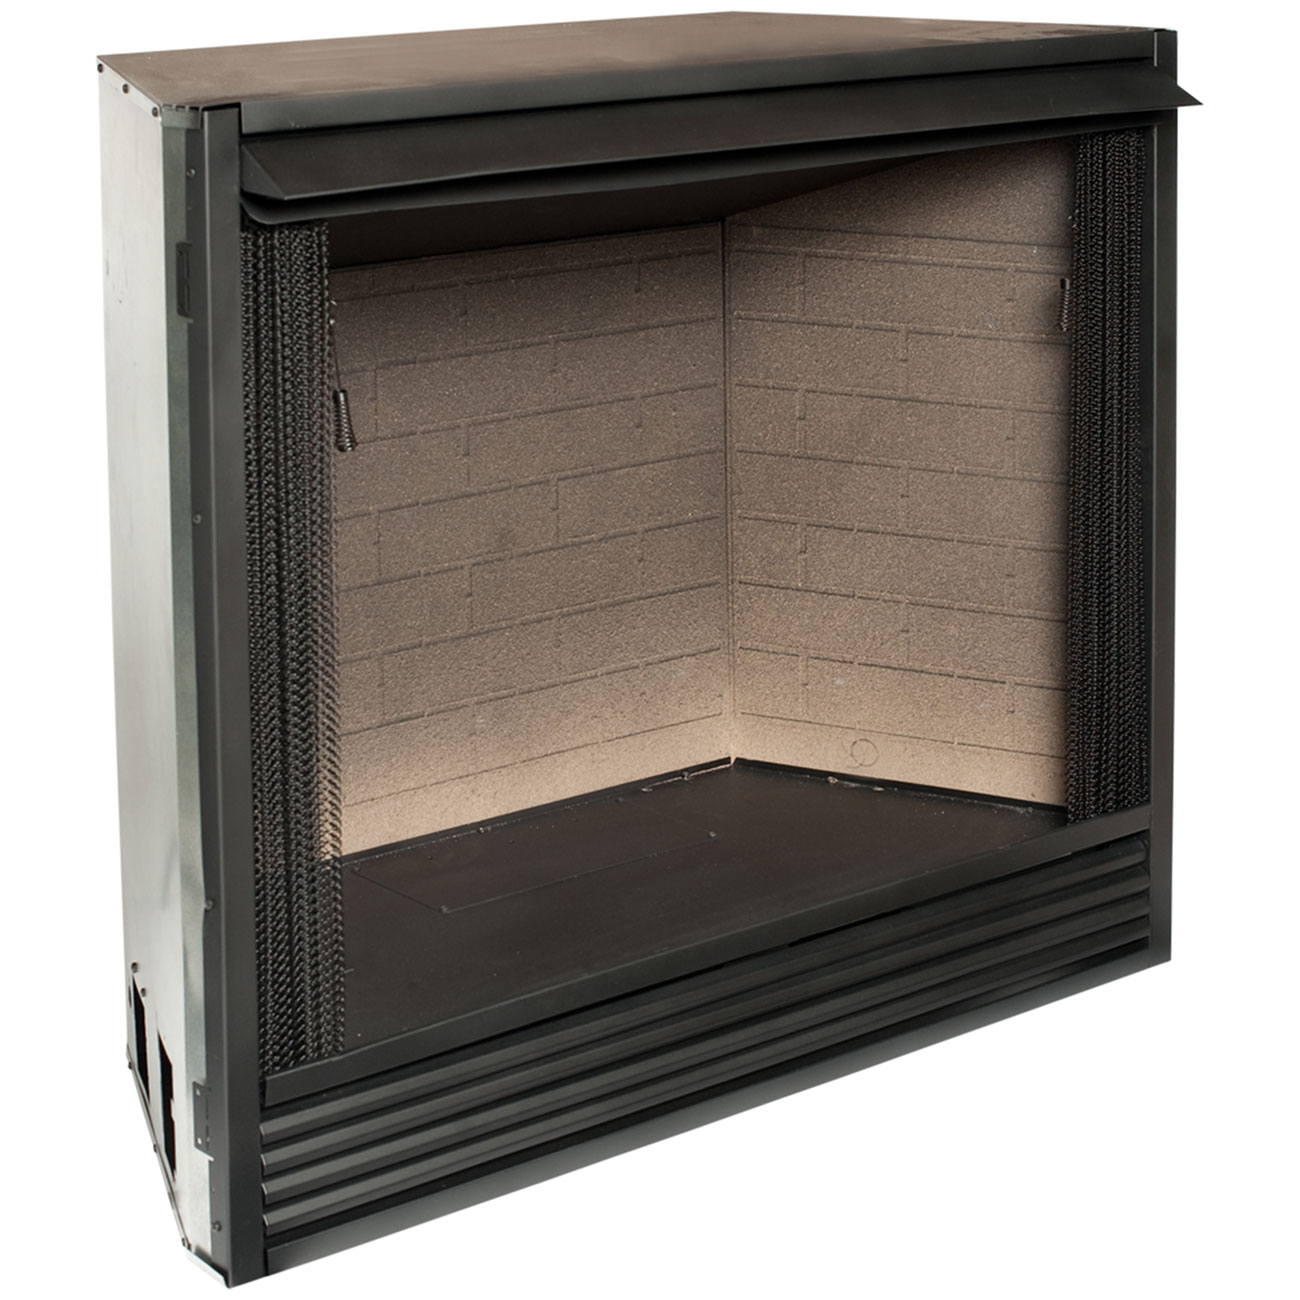 Procom 36 Quot Ventless Gas Firebox Insert Procom Heating